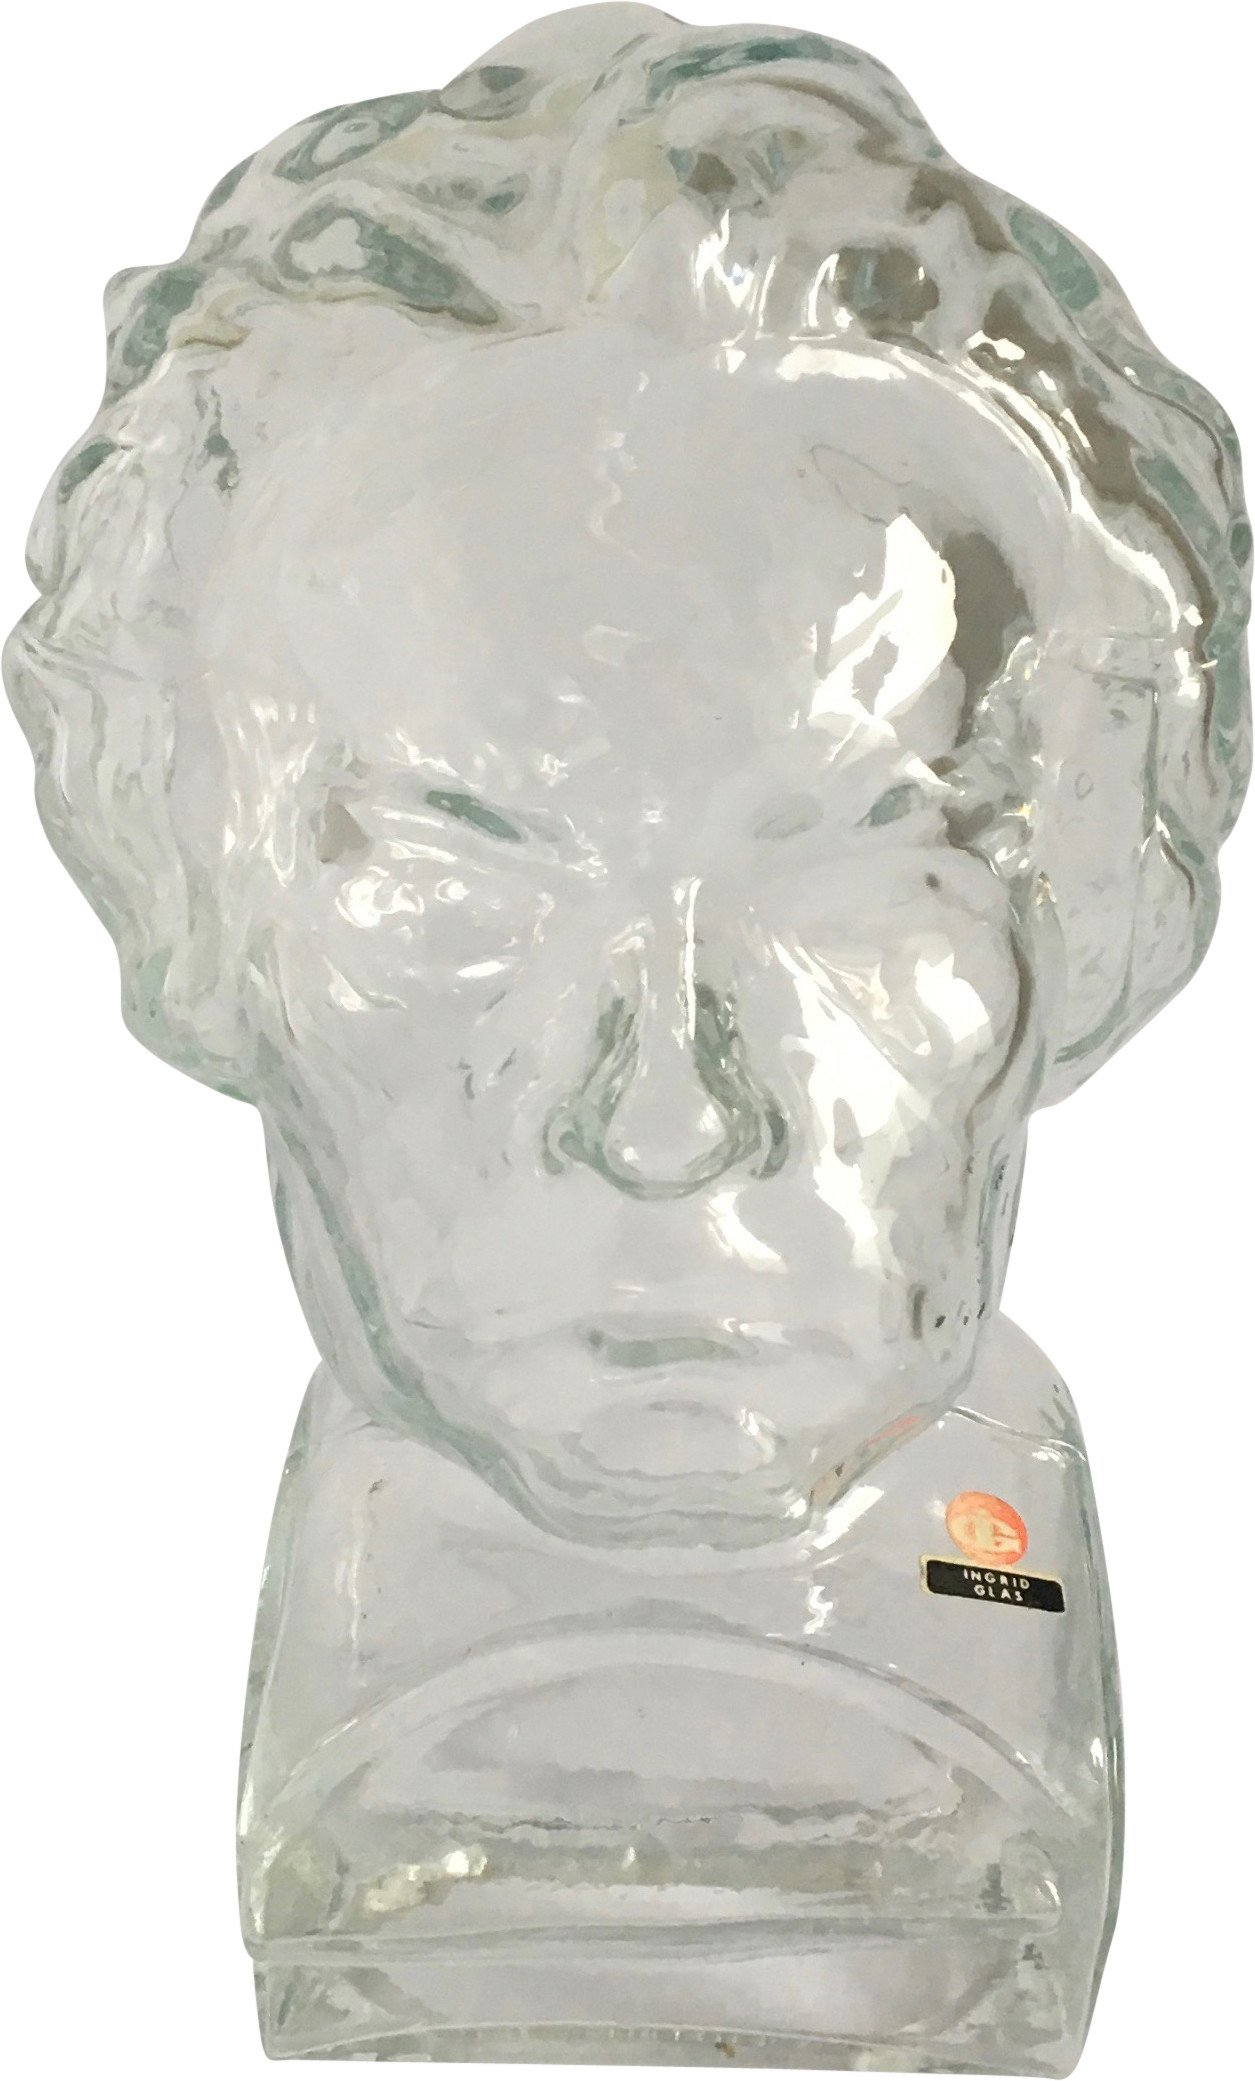 Glass Bust of Beethoven, Ingrid Glashutte, Germany, 1970s